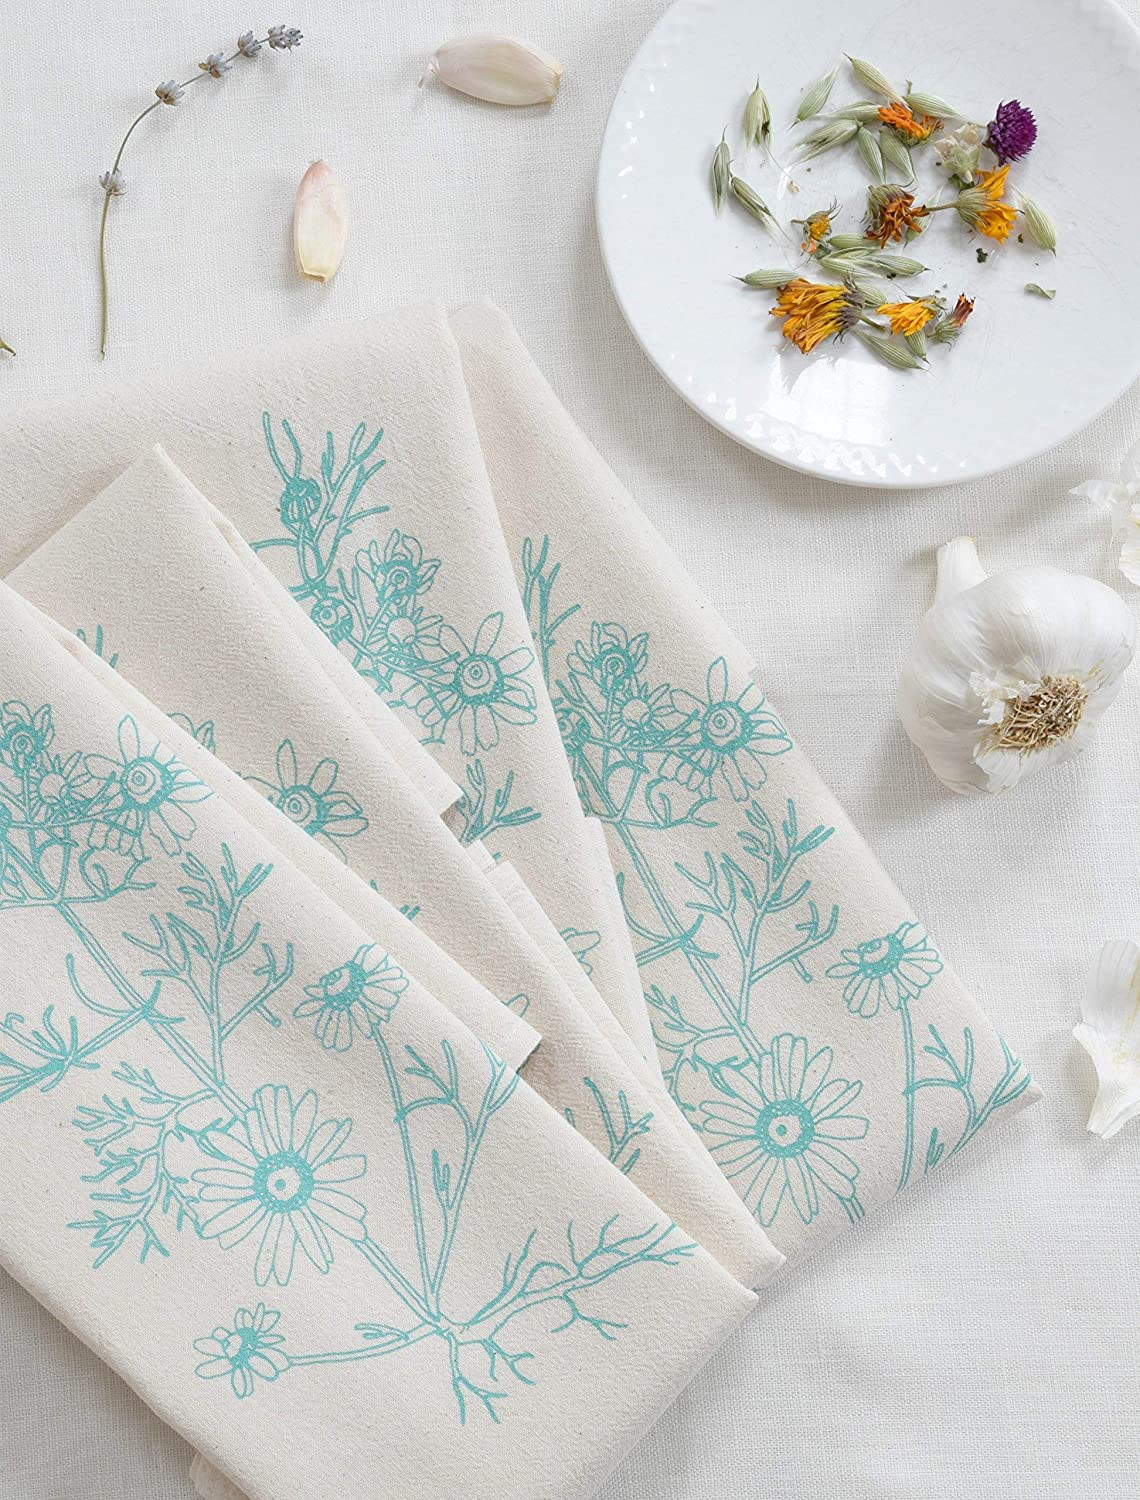 Cloth Dinner Napkins - Set of 4 - Chamomile Print - Handmade - Hand-printed - Unpaper Towels - Cotton Napkins - Washable - Reusable